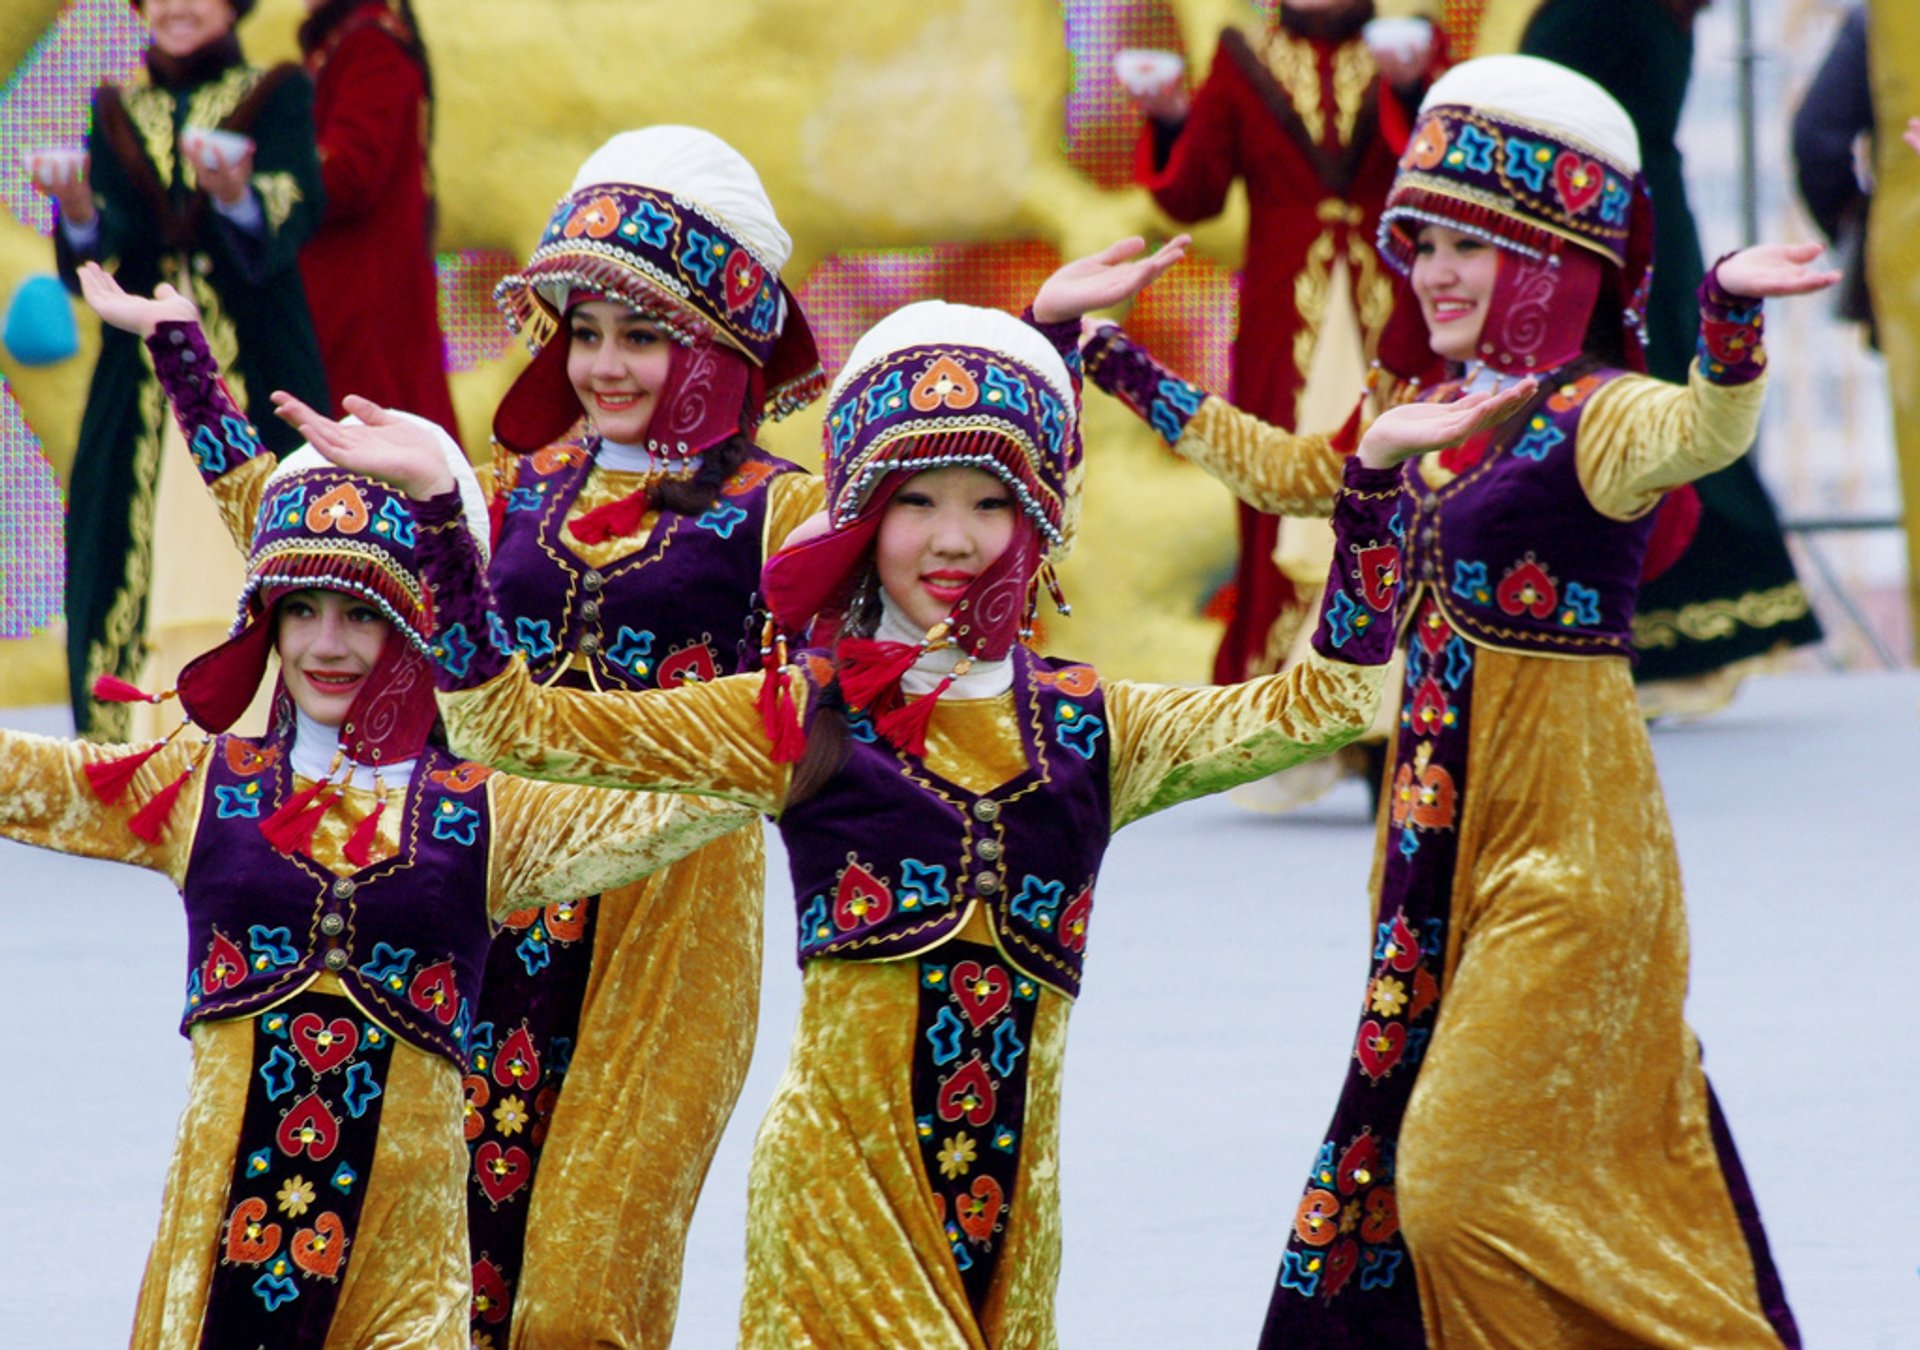 Nauryz (Spring/New Life) Festival in Mongolia 2020 - Best Time